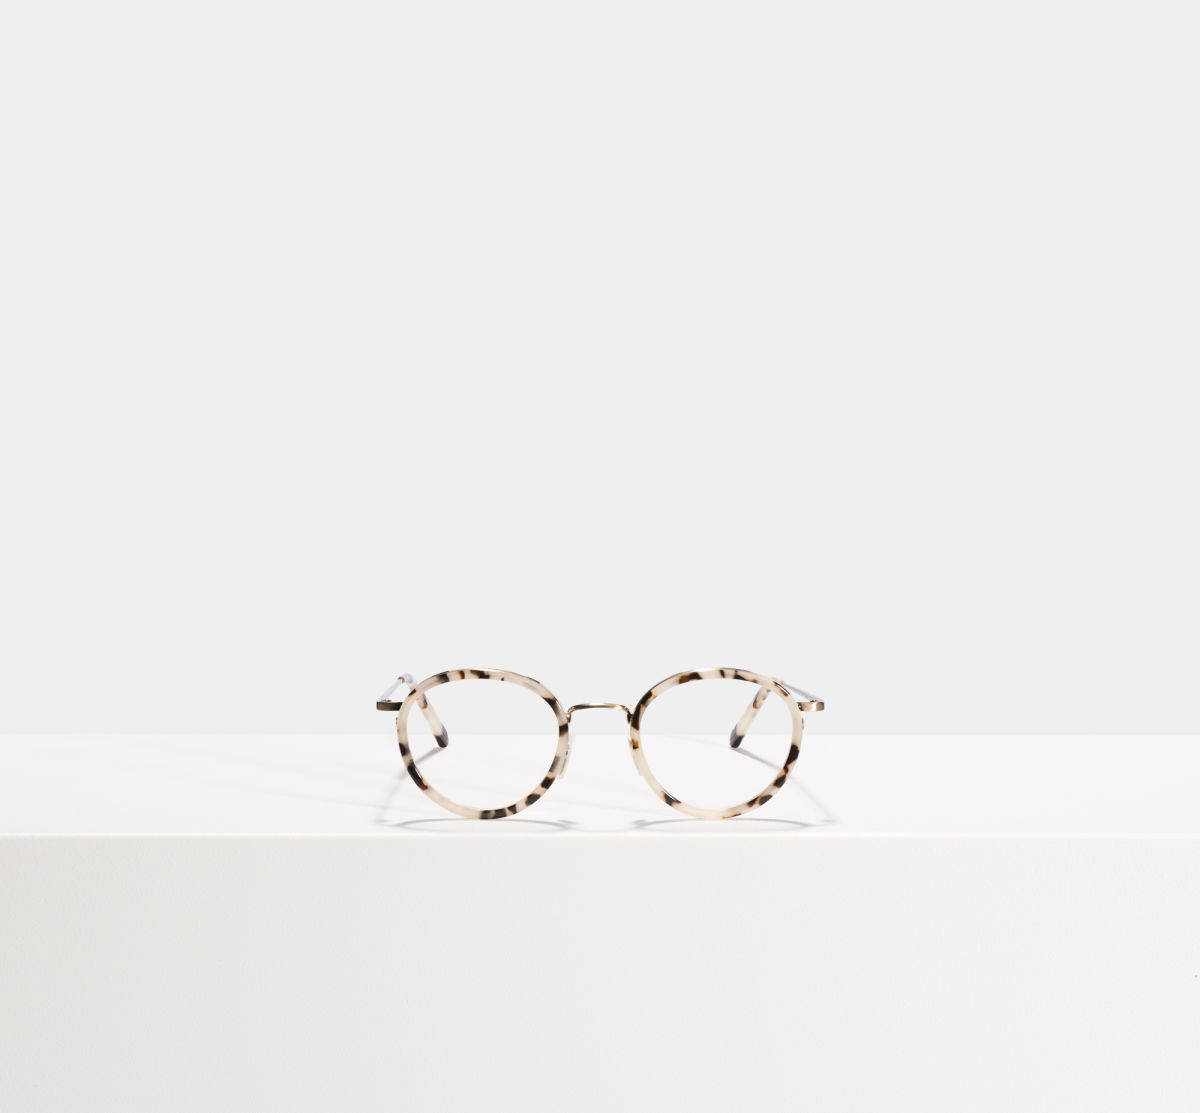 Tyler rund metal,combi glasses in Space Oddity by Ace & Tate